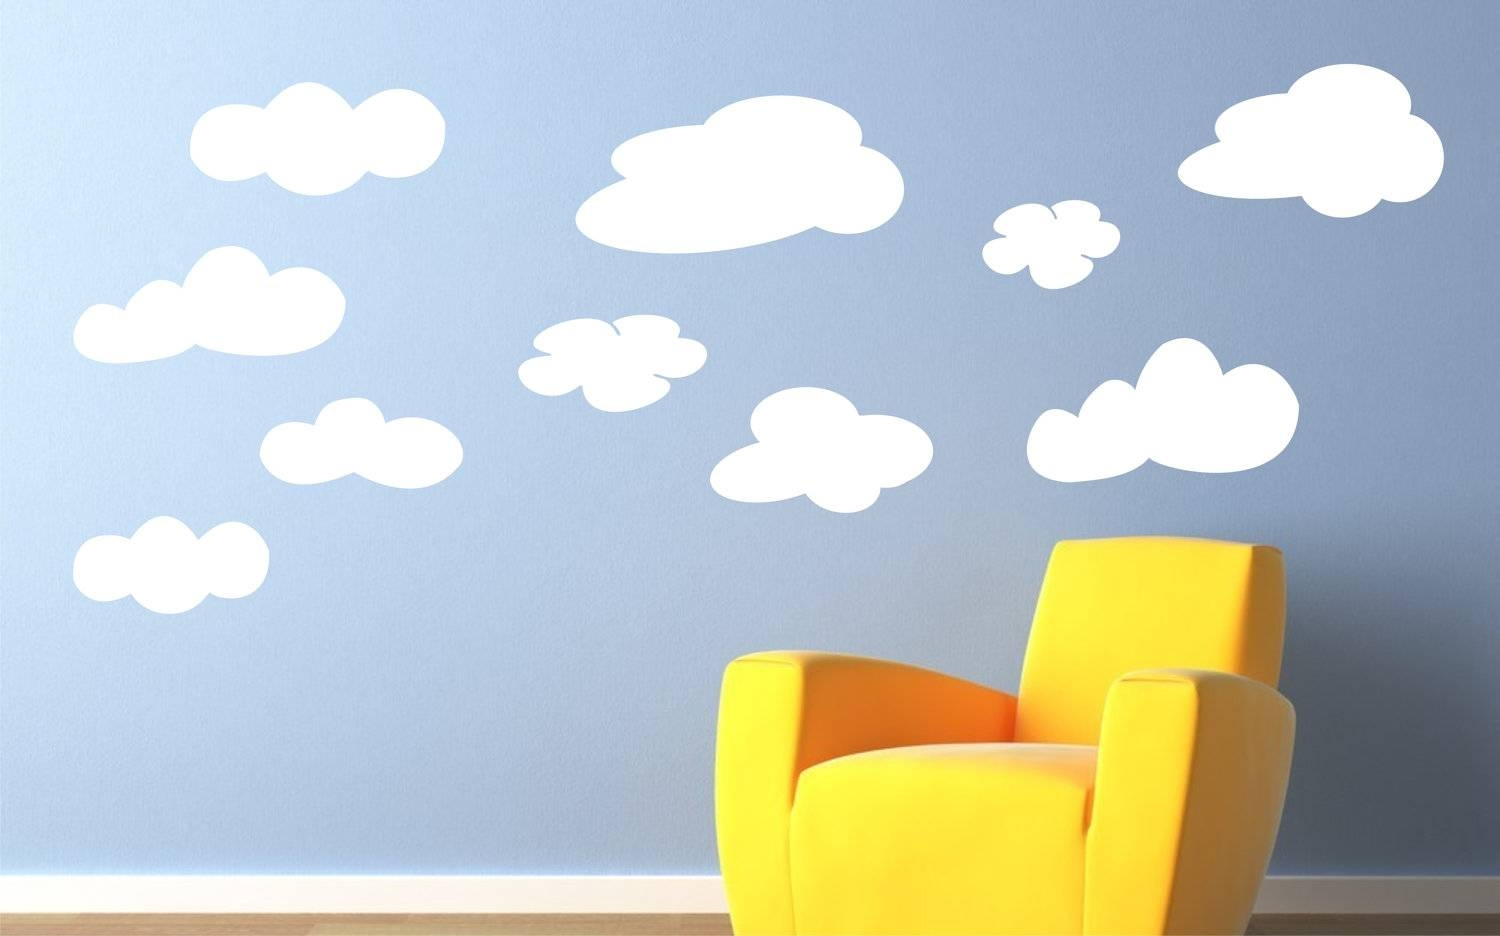 Childrens Decor Vinyl Wall Art Clouds Childrens Wall Decal Intended For Most Recent Etsy Childrens Wall Art (View 17 of 20)